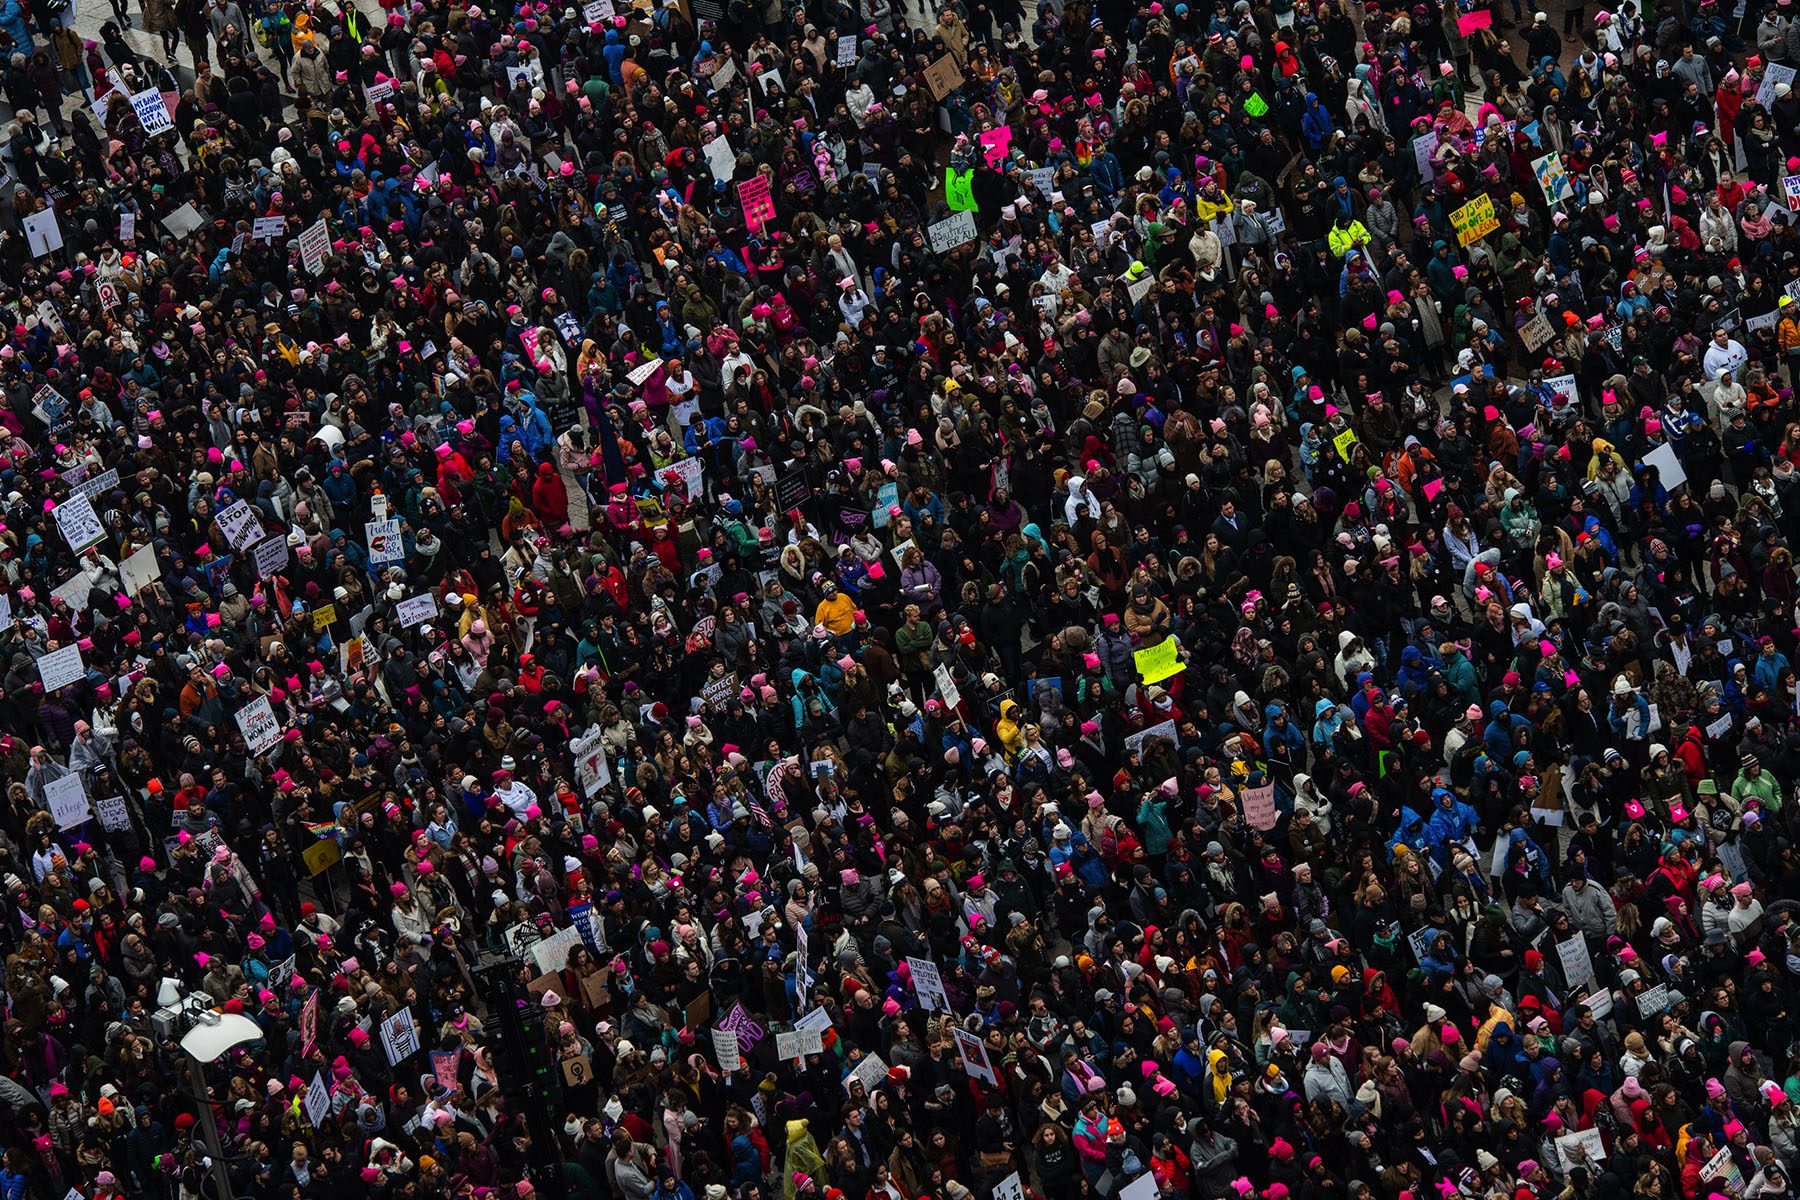 A bird's eye view of demonstrators at the 2019 Women's March.